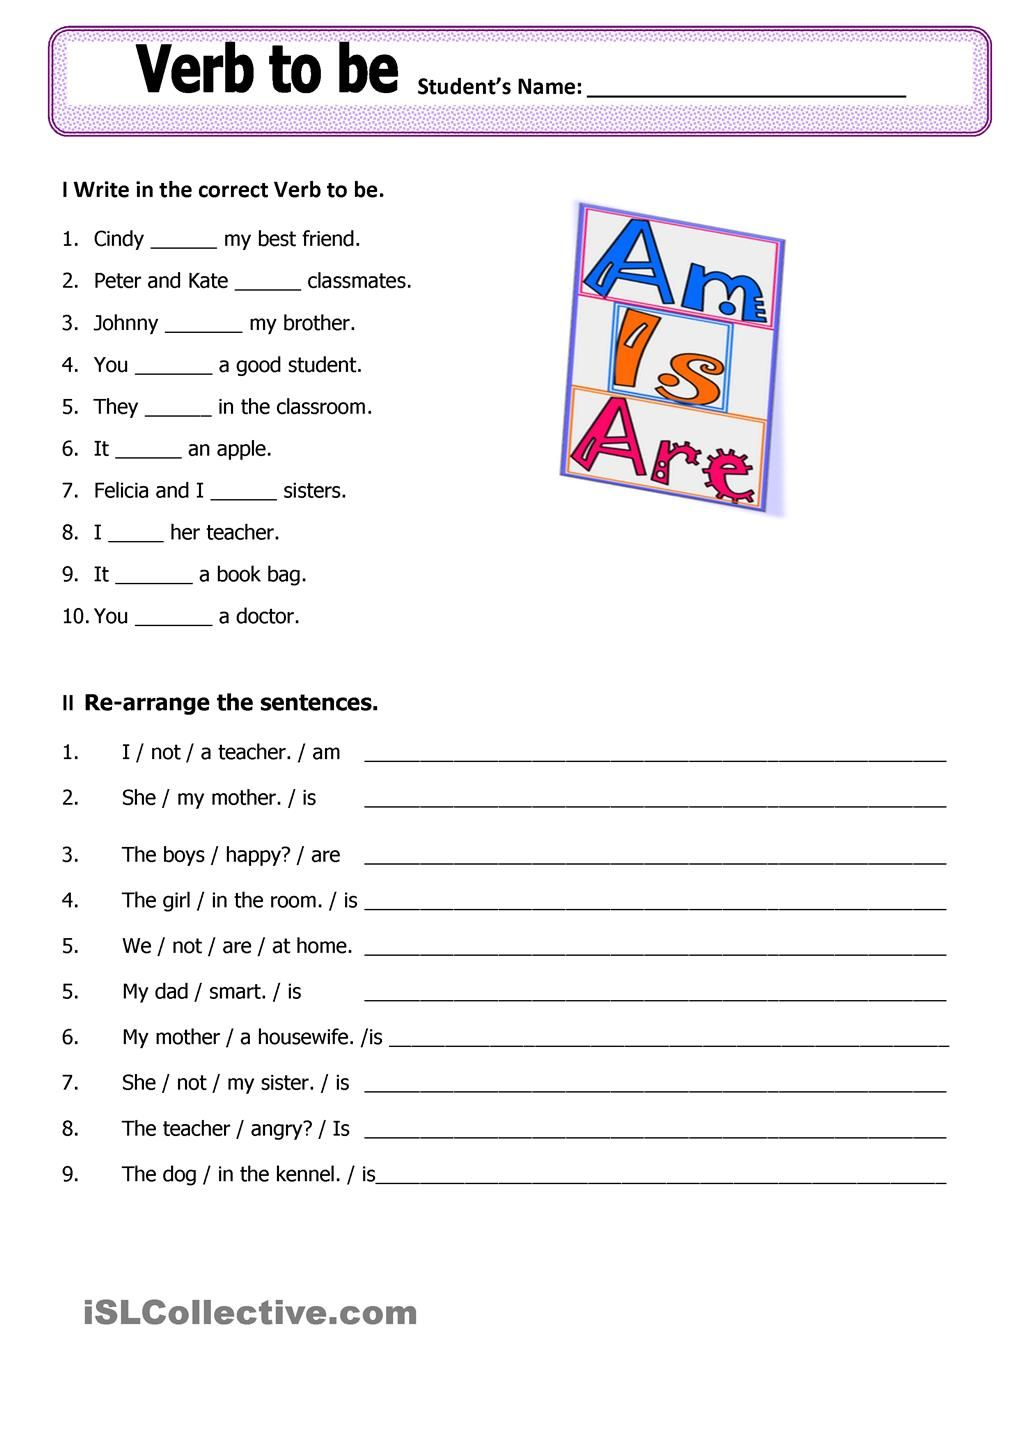 worksheet Learning English Worksheets free esl efl printable worksheets and handouts englisch learning english handouts